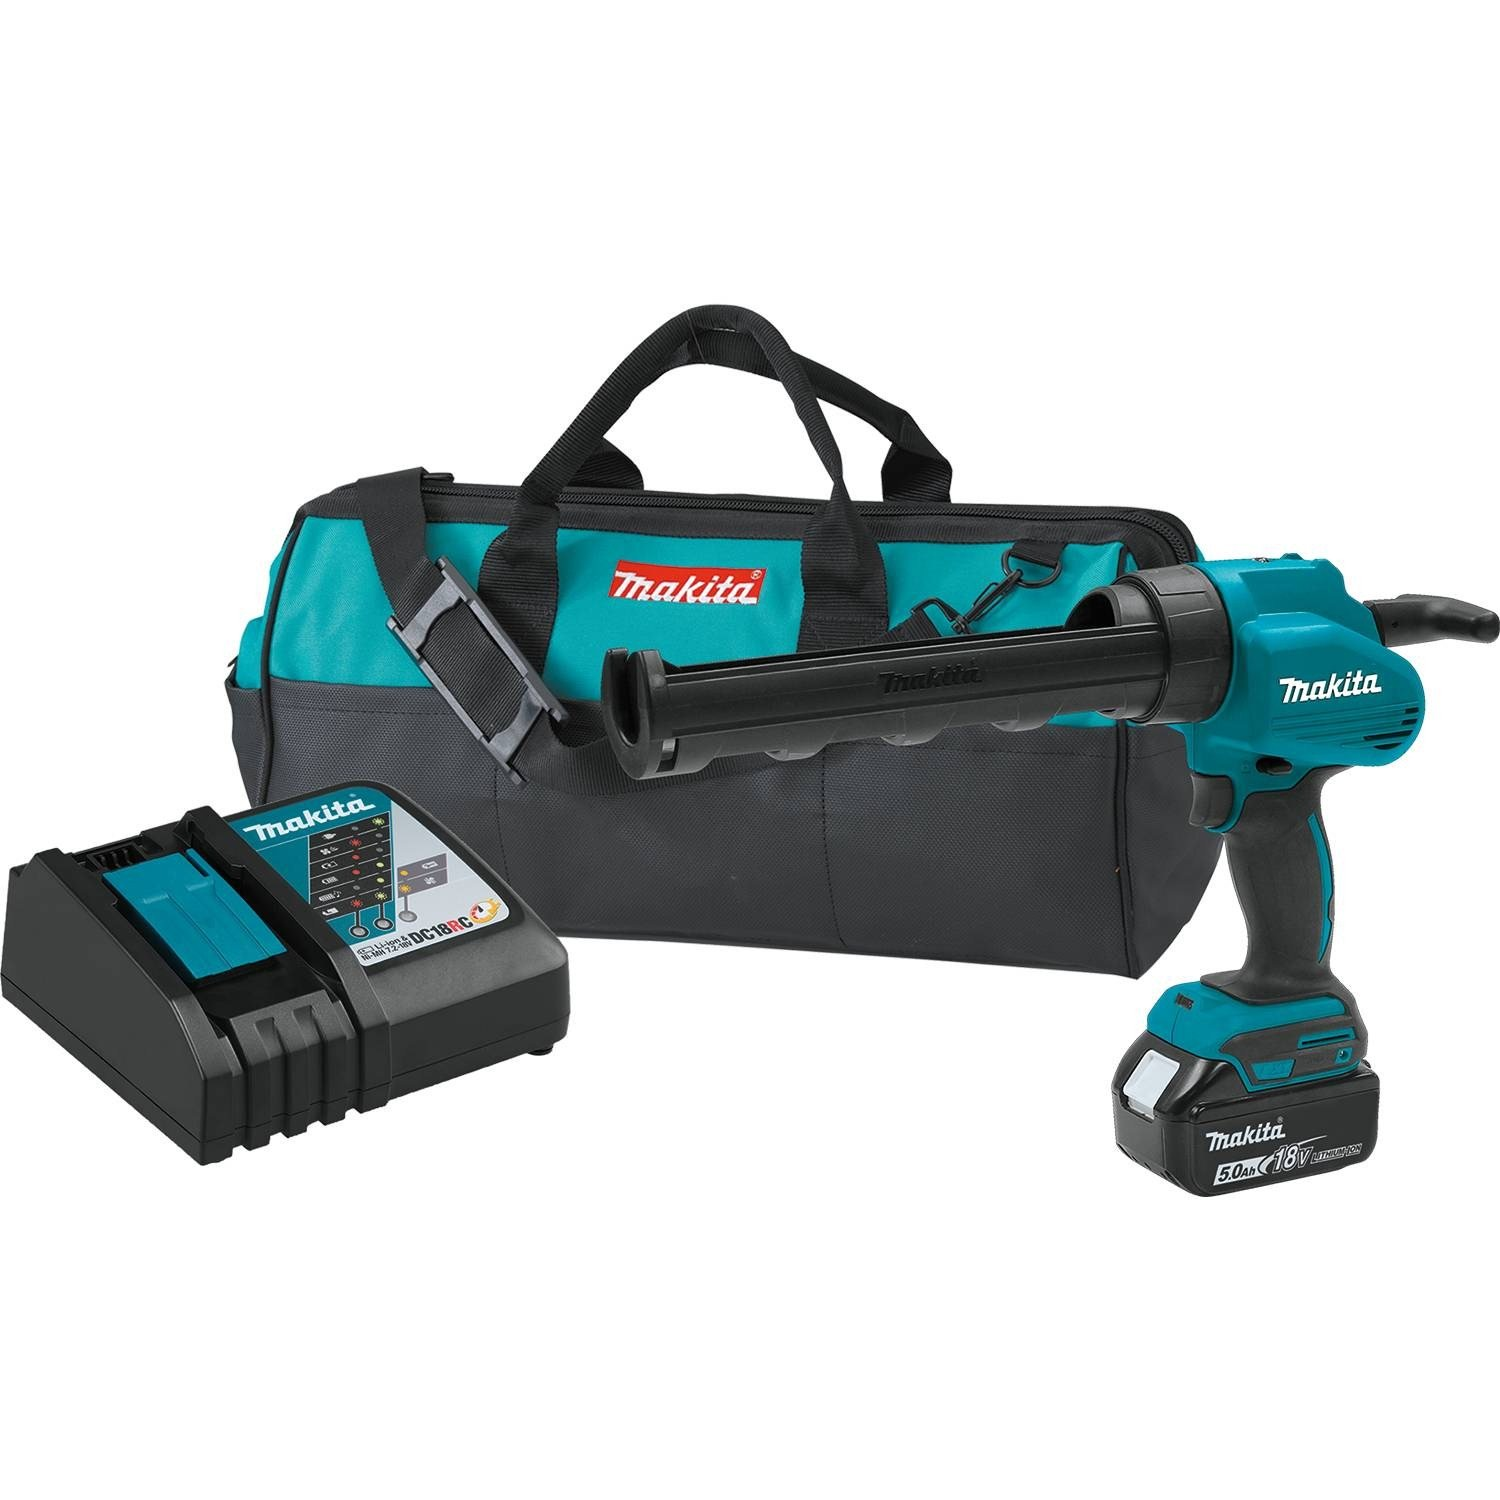 Makita XGC01T1 18V LXT Lithium-Ion Cordless 10 Oz. Caulk & Adhesive Gun Kit (5.0Ah),